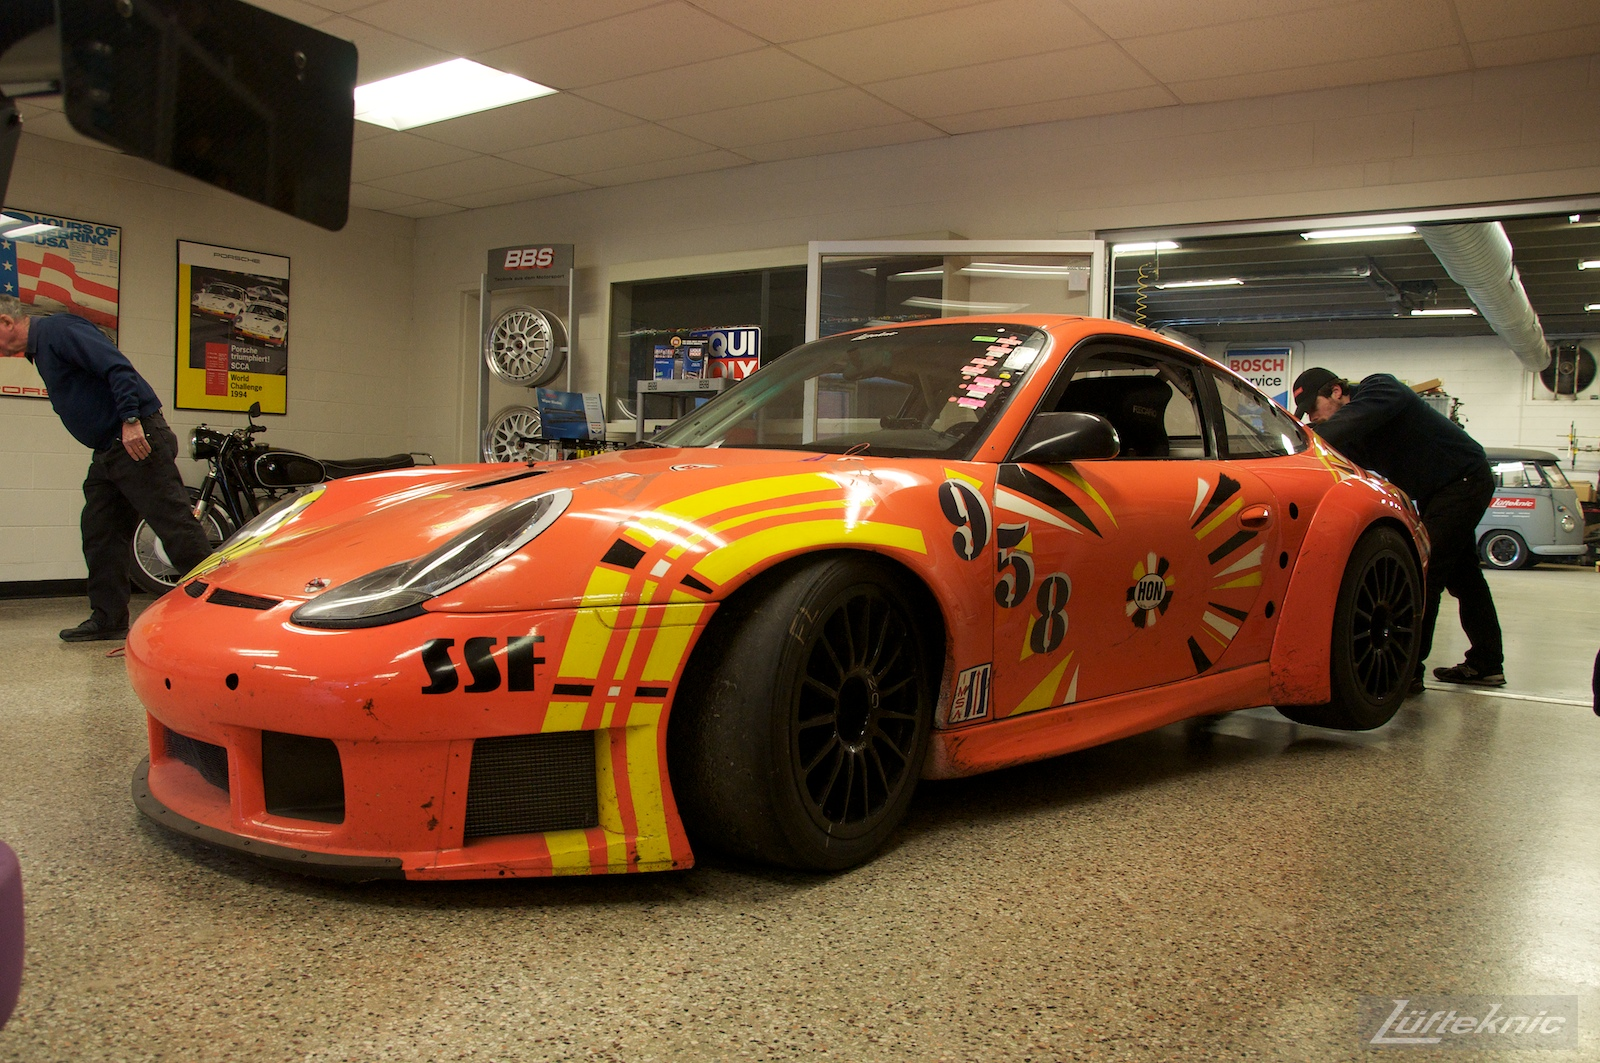 ZIP Racing Hazardous Sports Porsche 996 GT3 RS art car